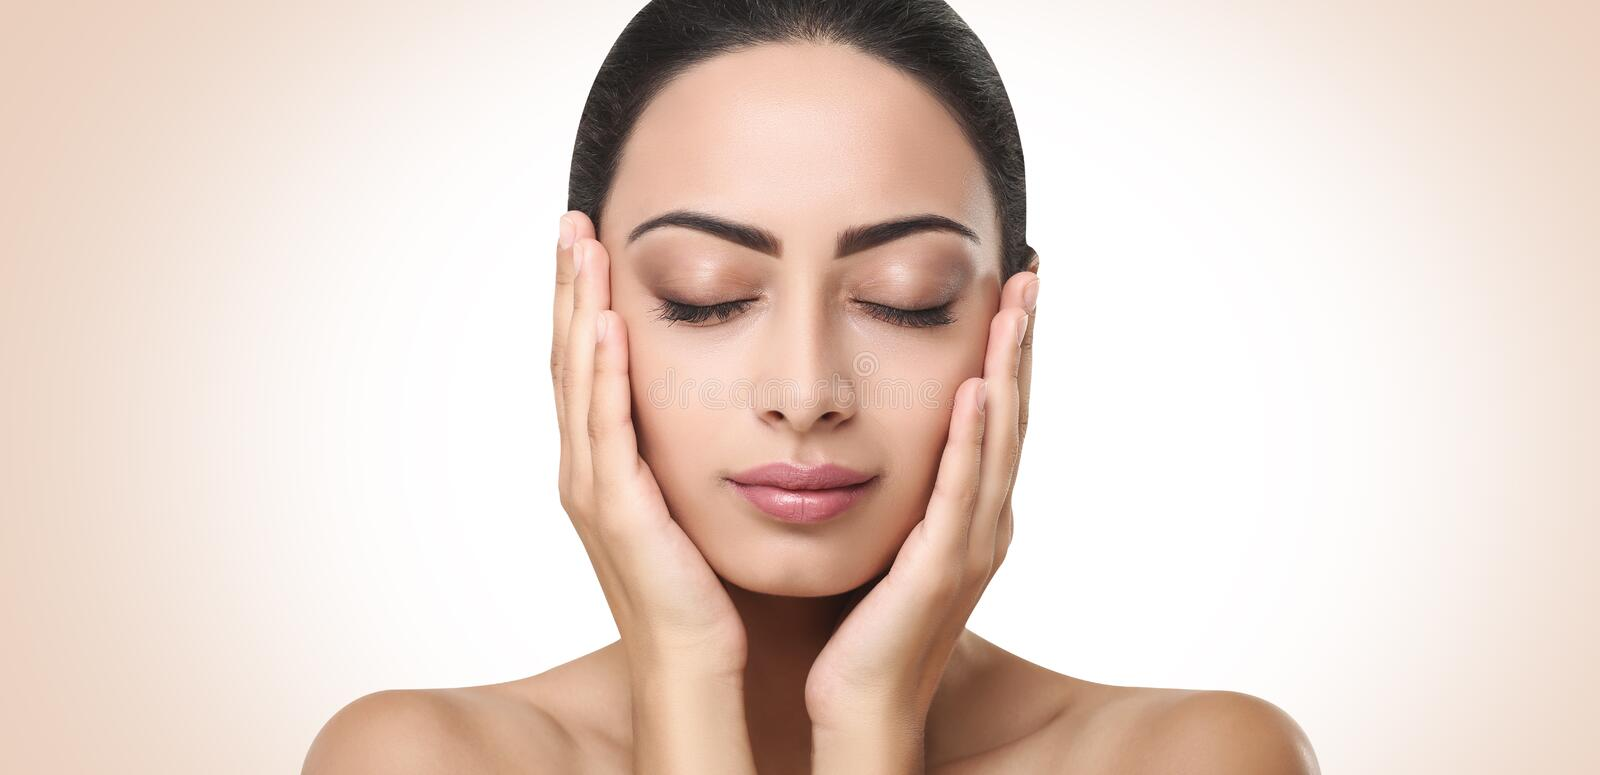 Beautiful indian girl perfect face with closed eyes stock images